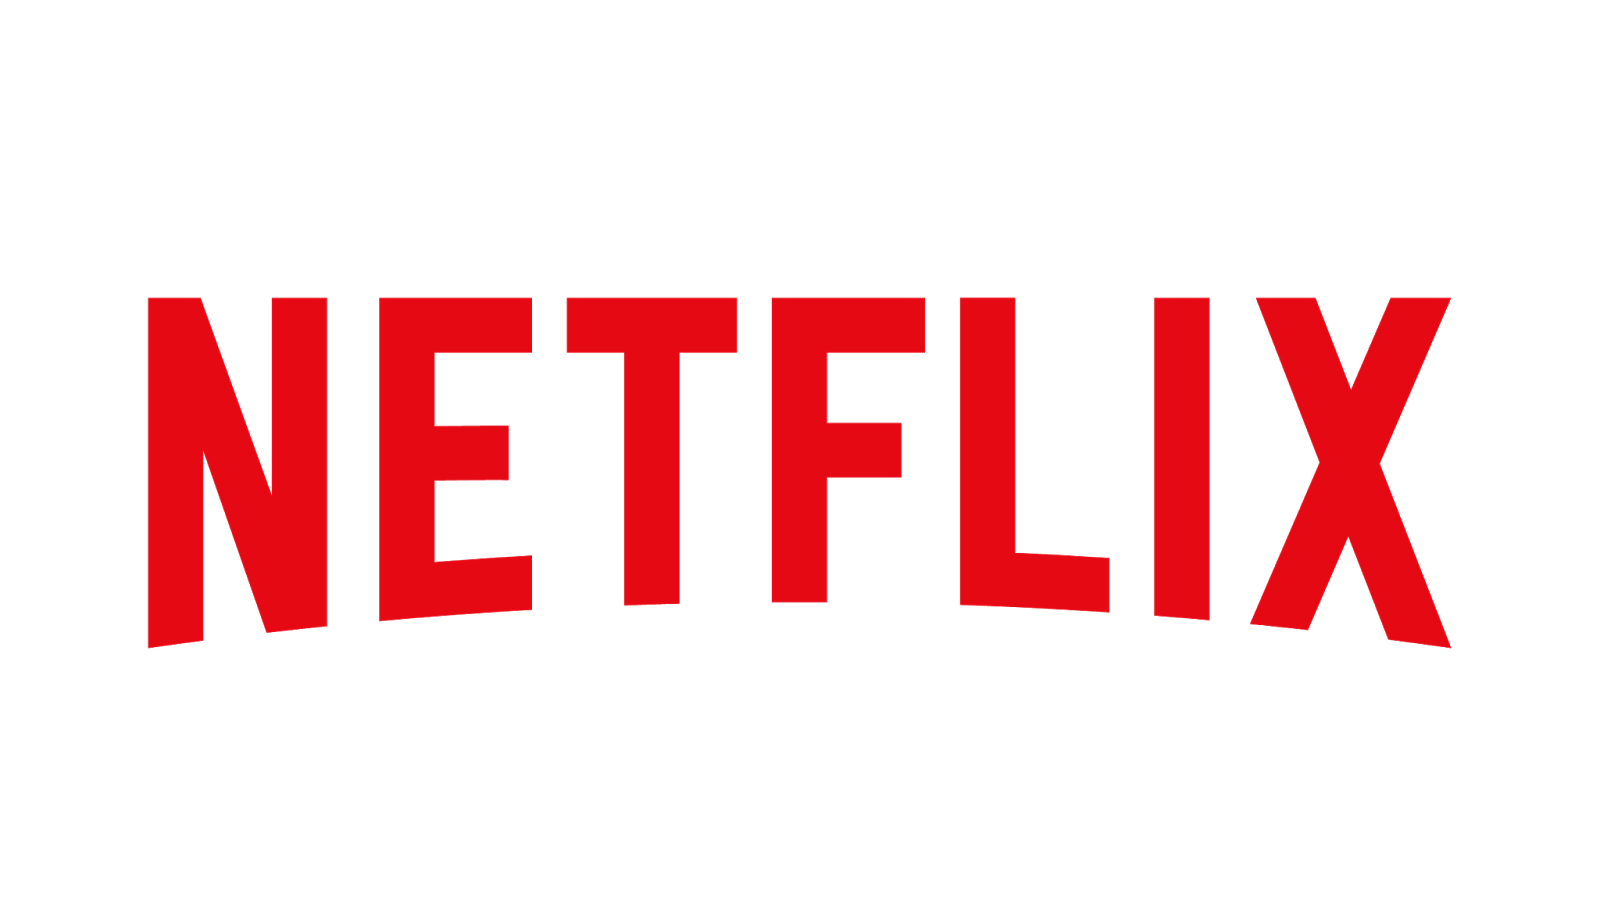 Free cliparts download clip. Netflix drawing artwork png black and white library